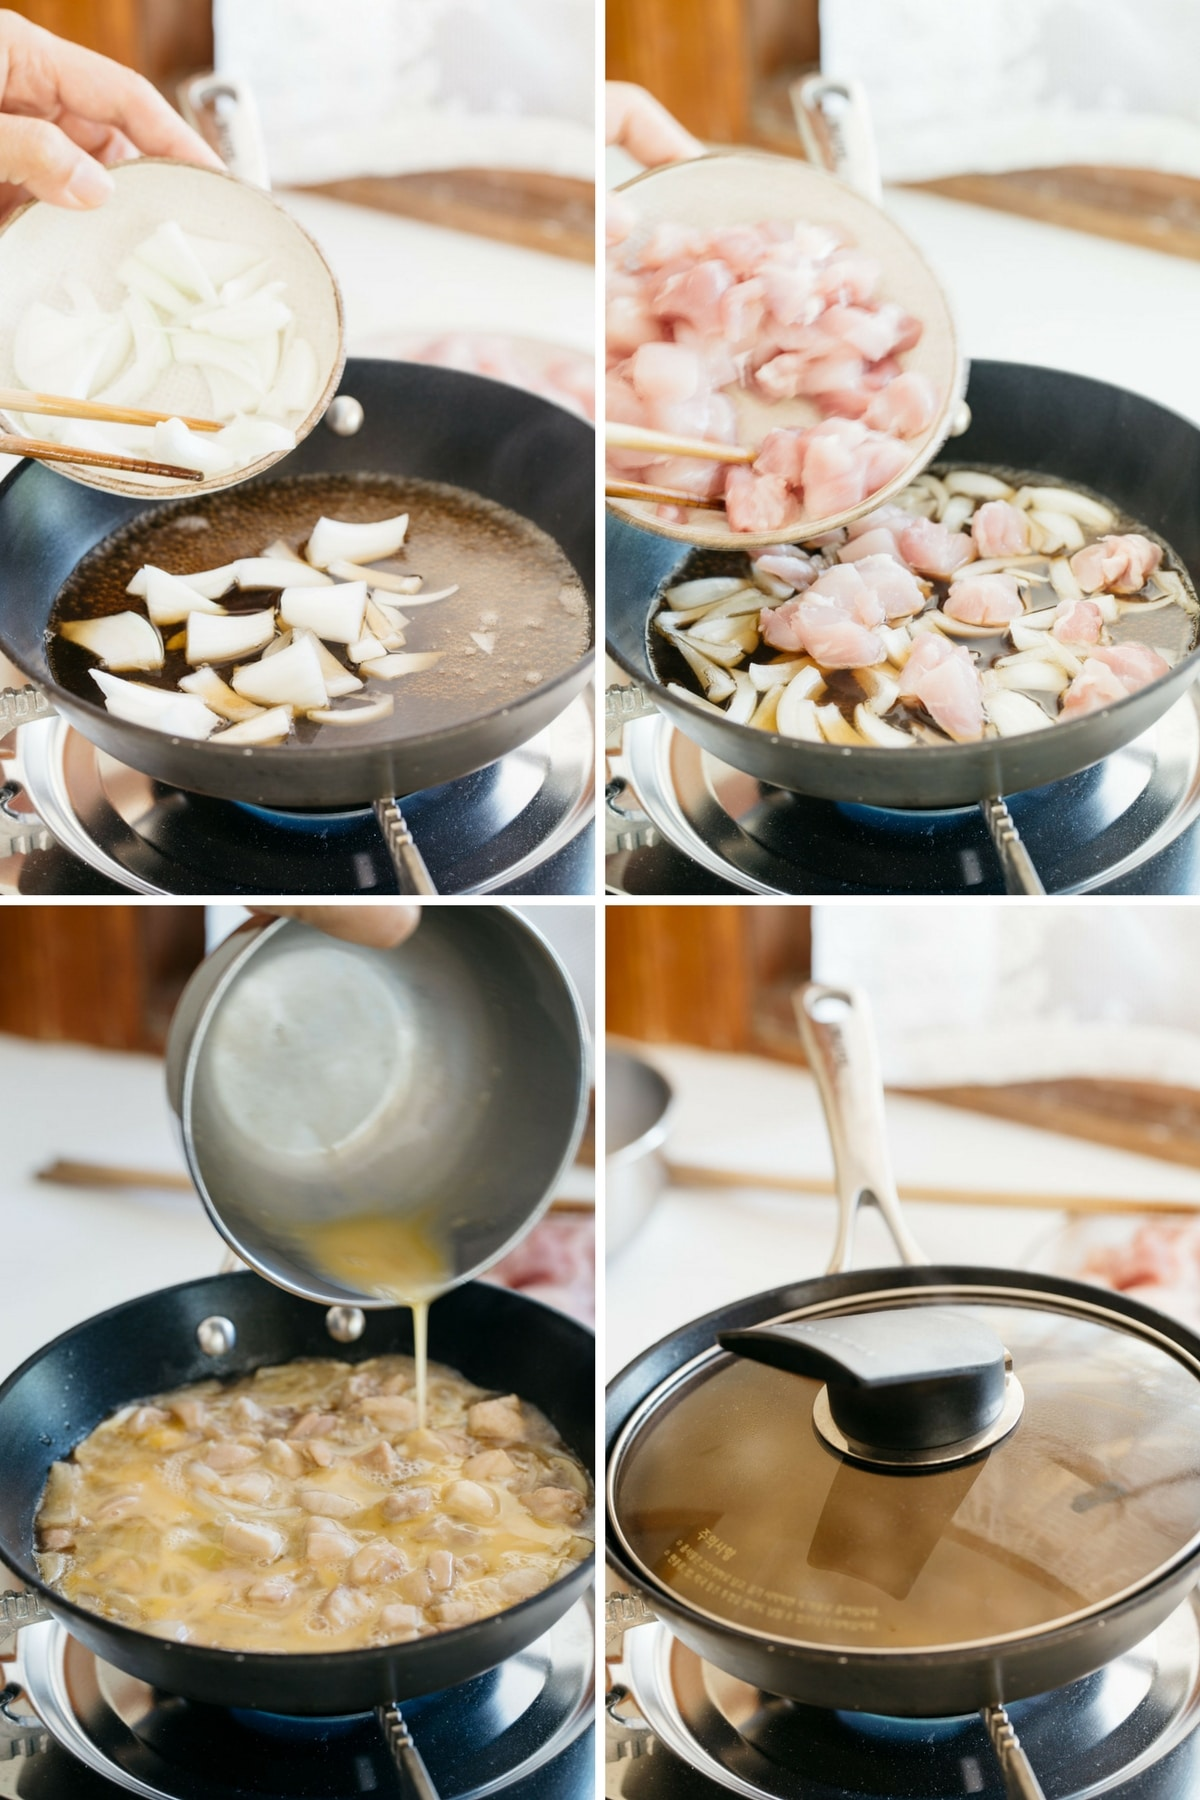 4 panels of photograph showing the process of making Oyako Donburi